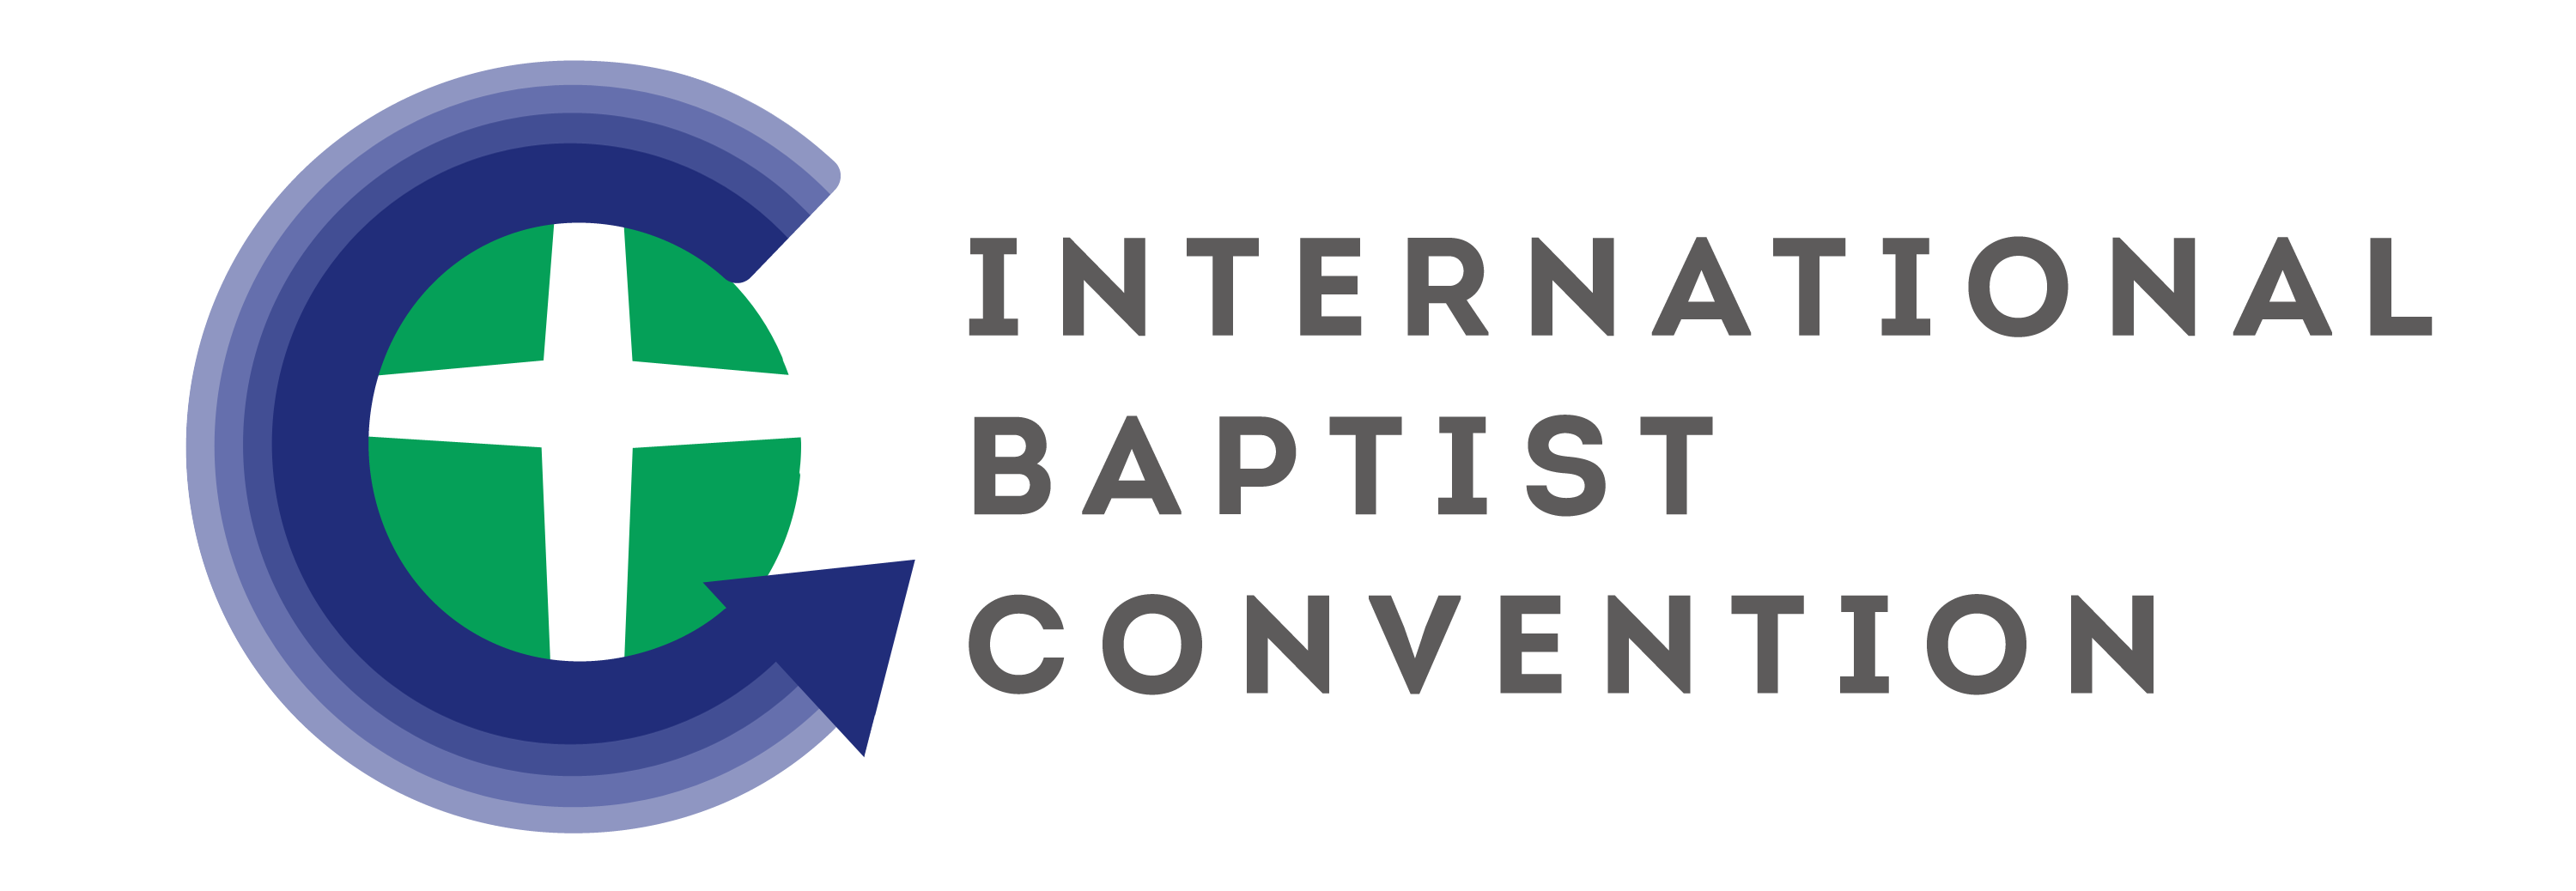 International Baptist Convention